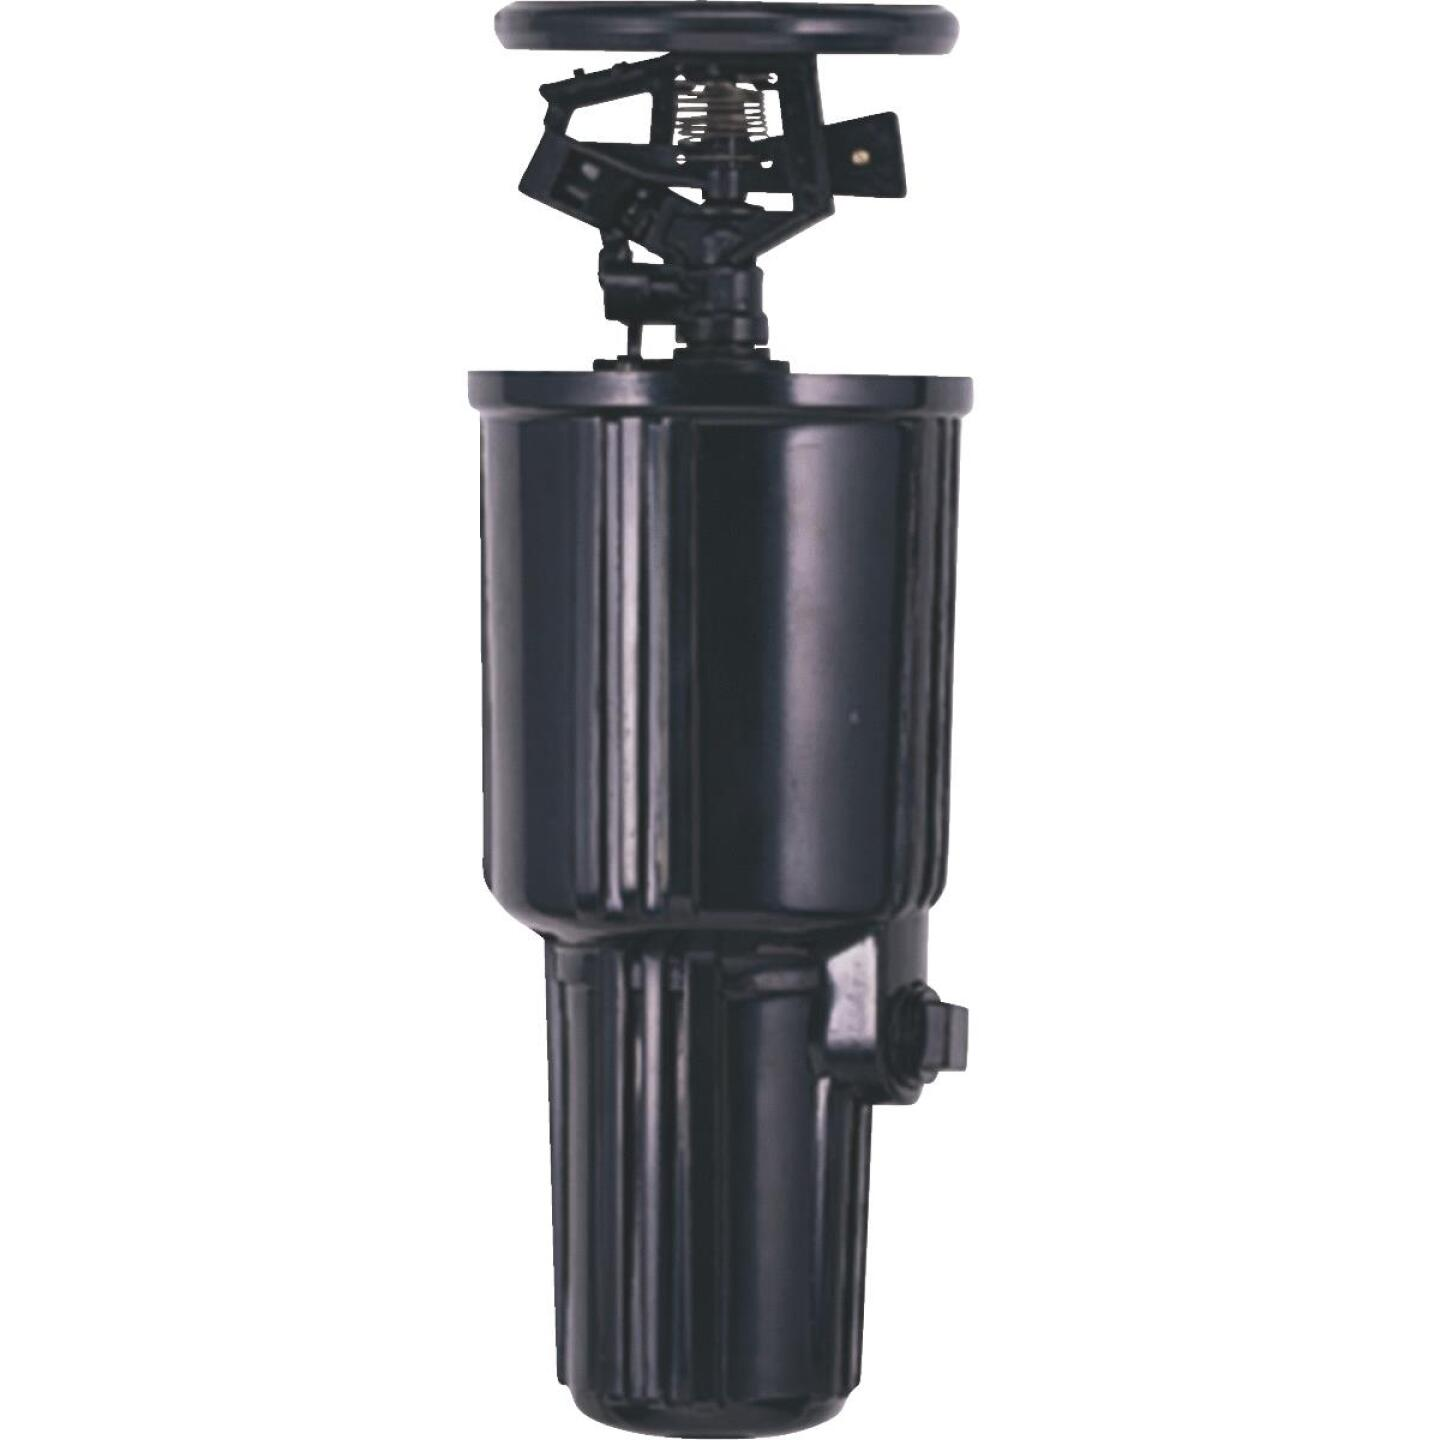 Orbit WaterMaster 3 In. Full or Partial Circle Pop-up Impact Head Sprinkler Image 1